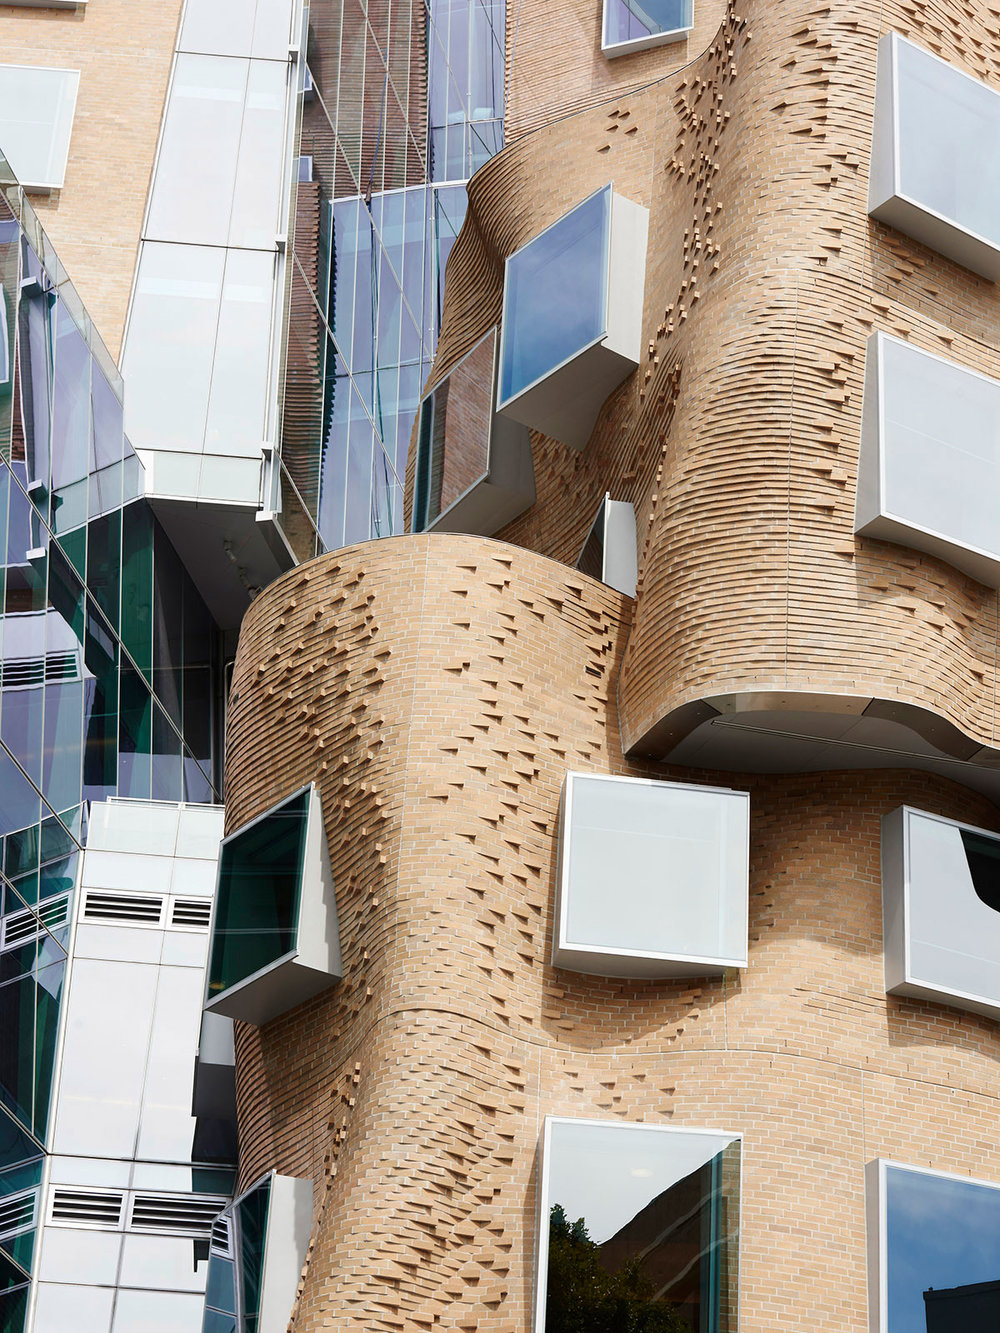 Façade of Dr Chau Chak Wing Building in the campus of the University of Technology in Sydney by Frank Gehry in Australia as seen on www.yellowtrace.com.au